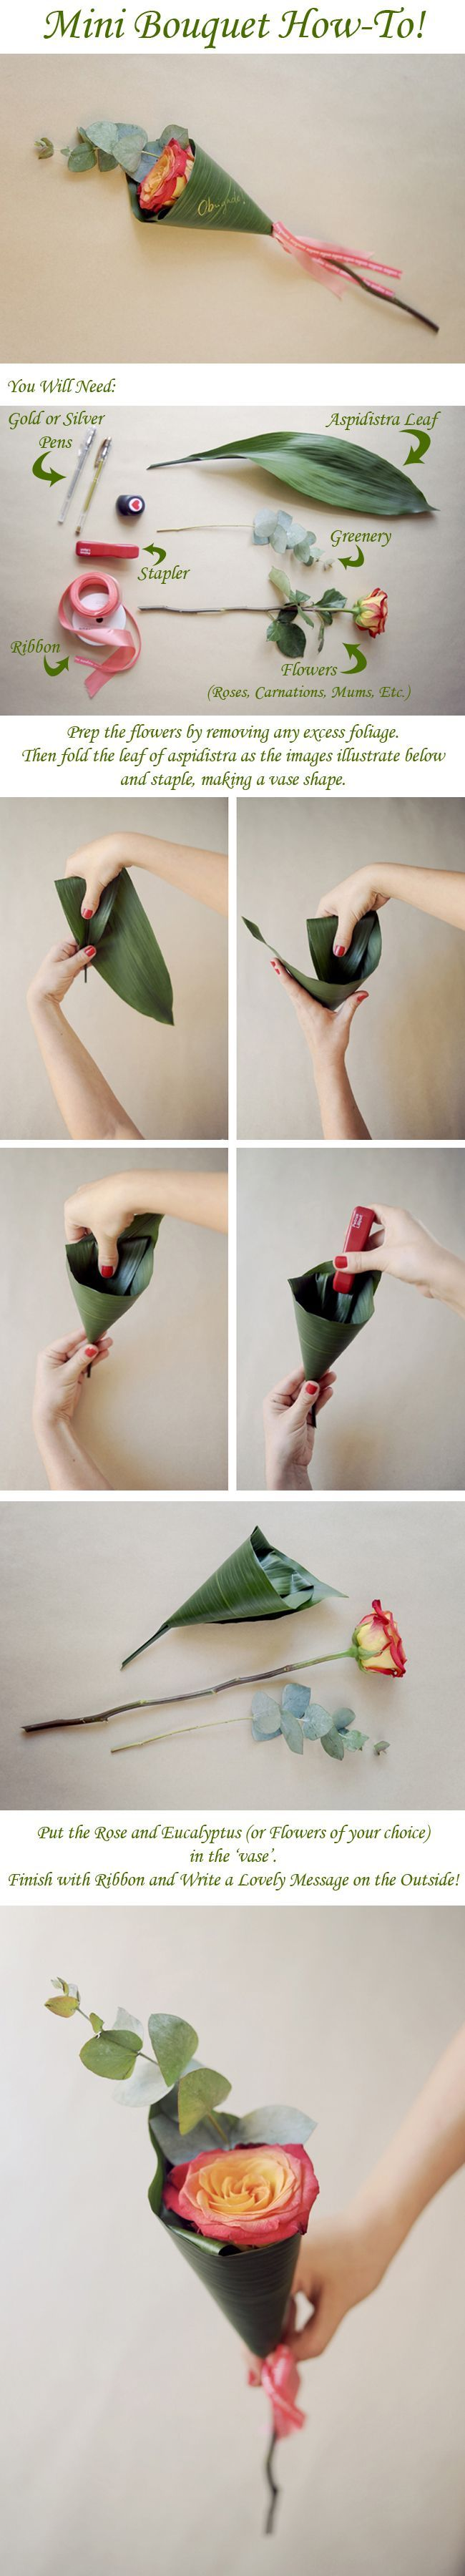 Mini Bouquet How-To - Photos by: Piteira Photography